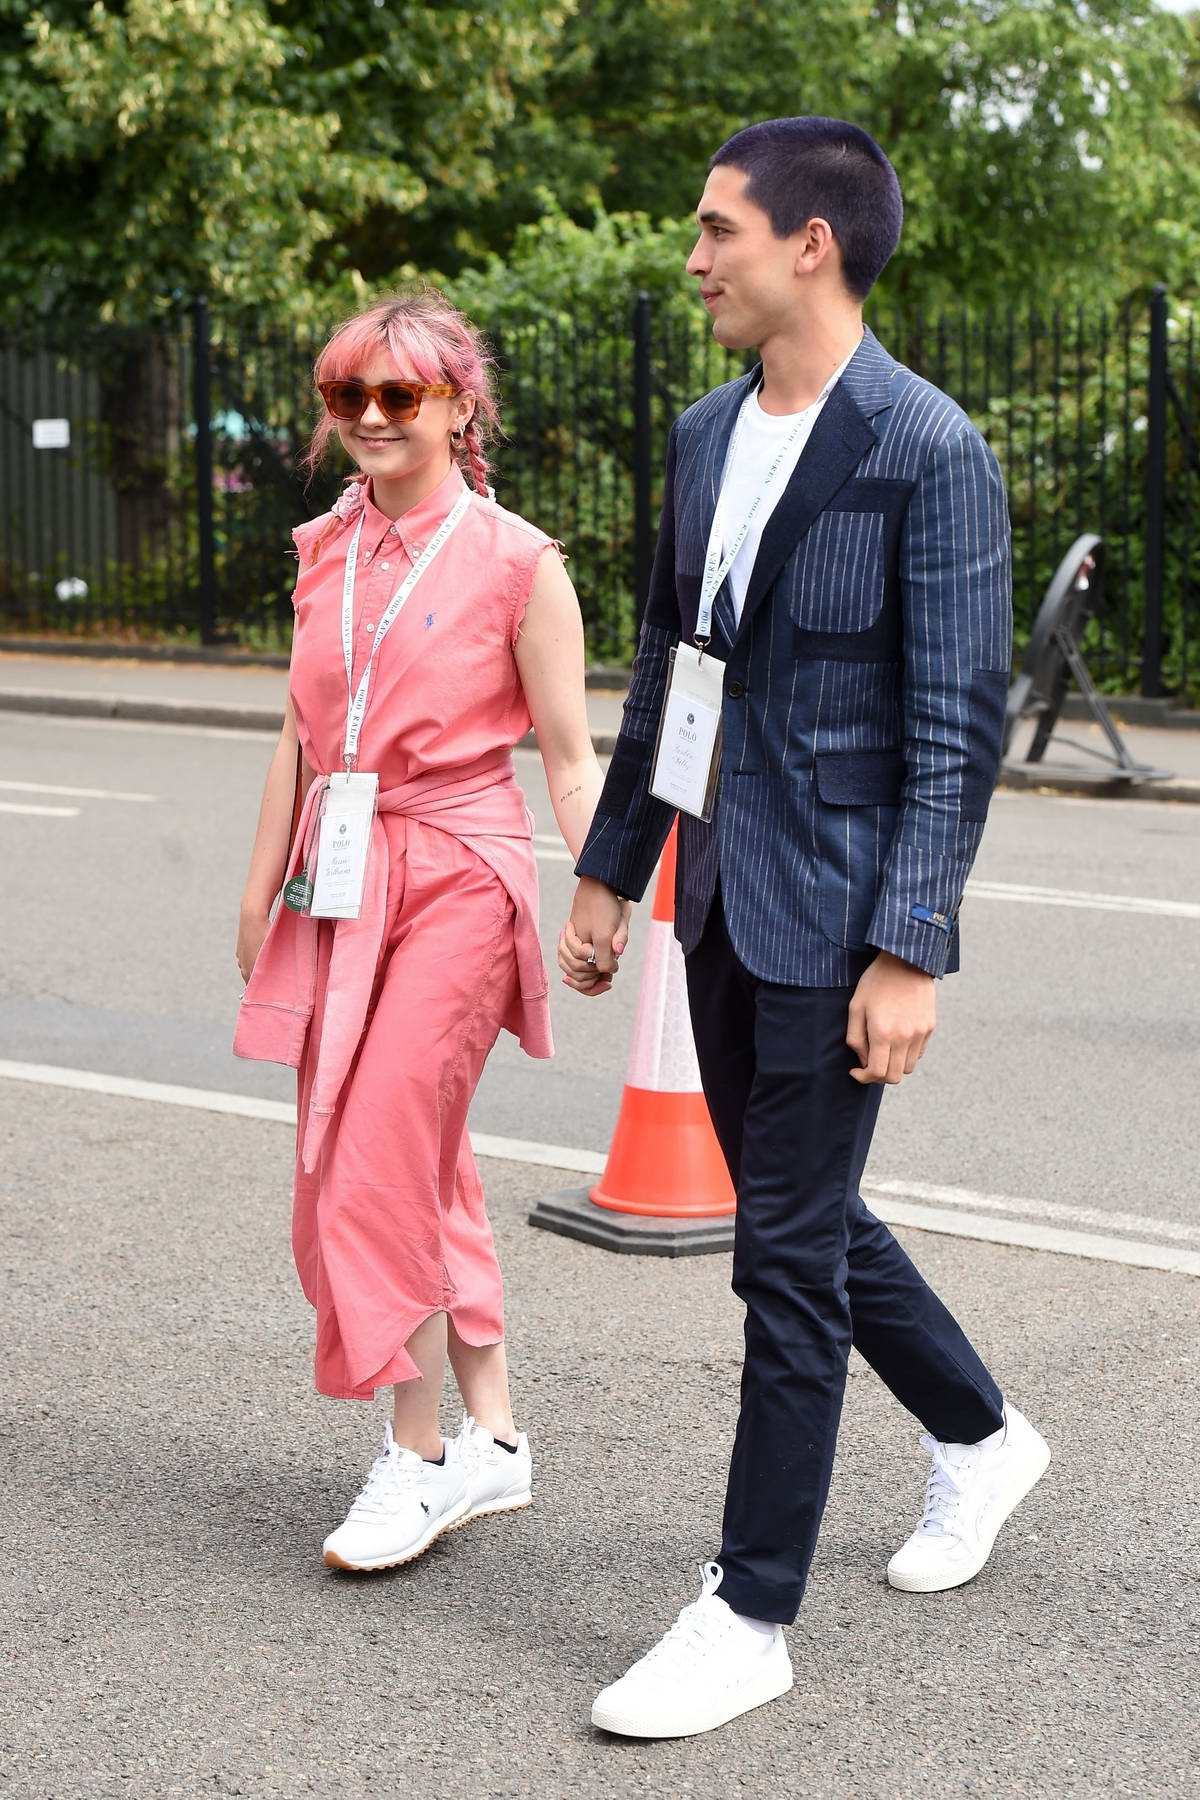 Maisie Williams and boyfriend Reuben Selby attend the 2019 Wimbledon Tennis Championships in London, UK